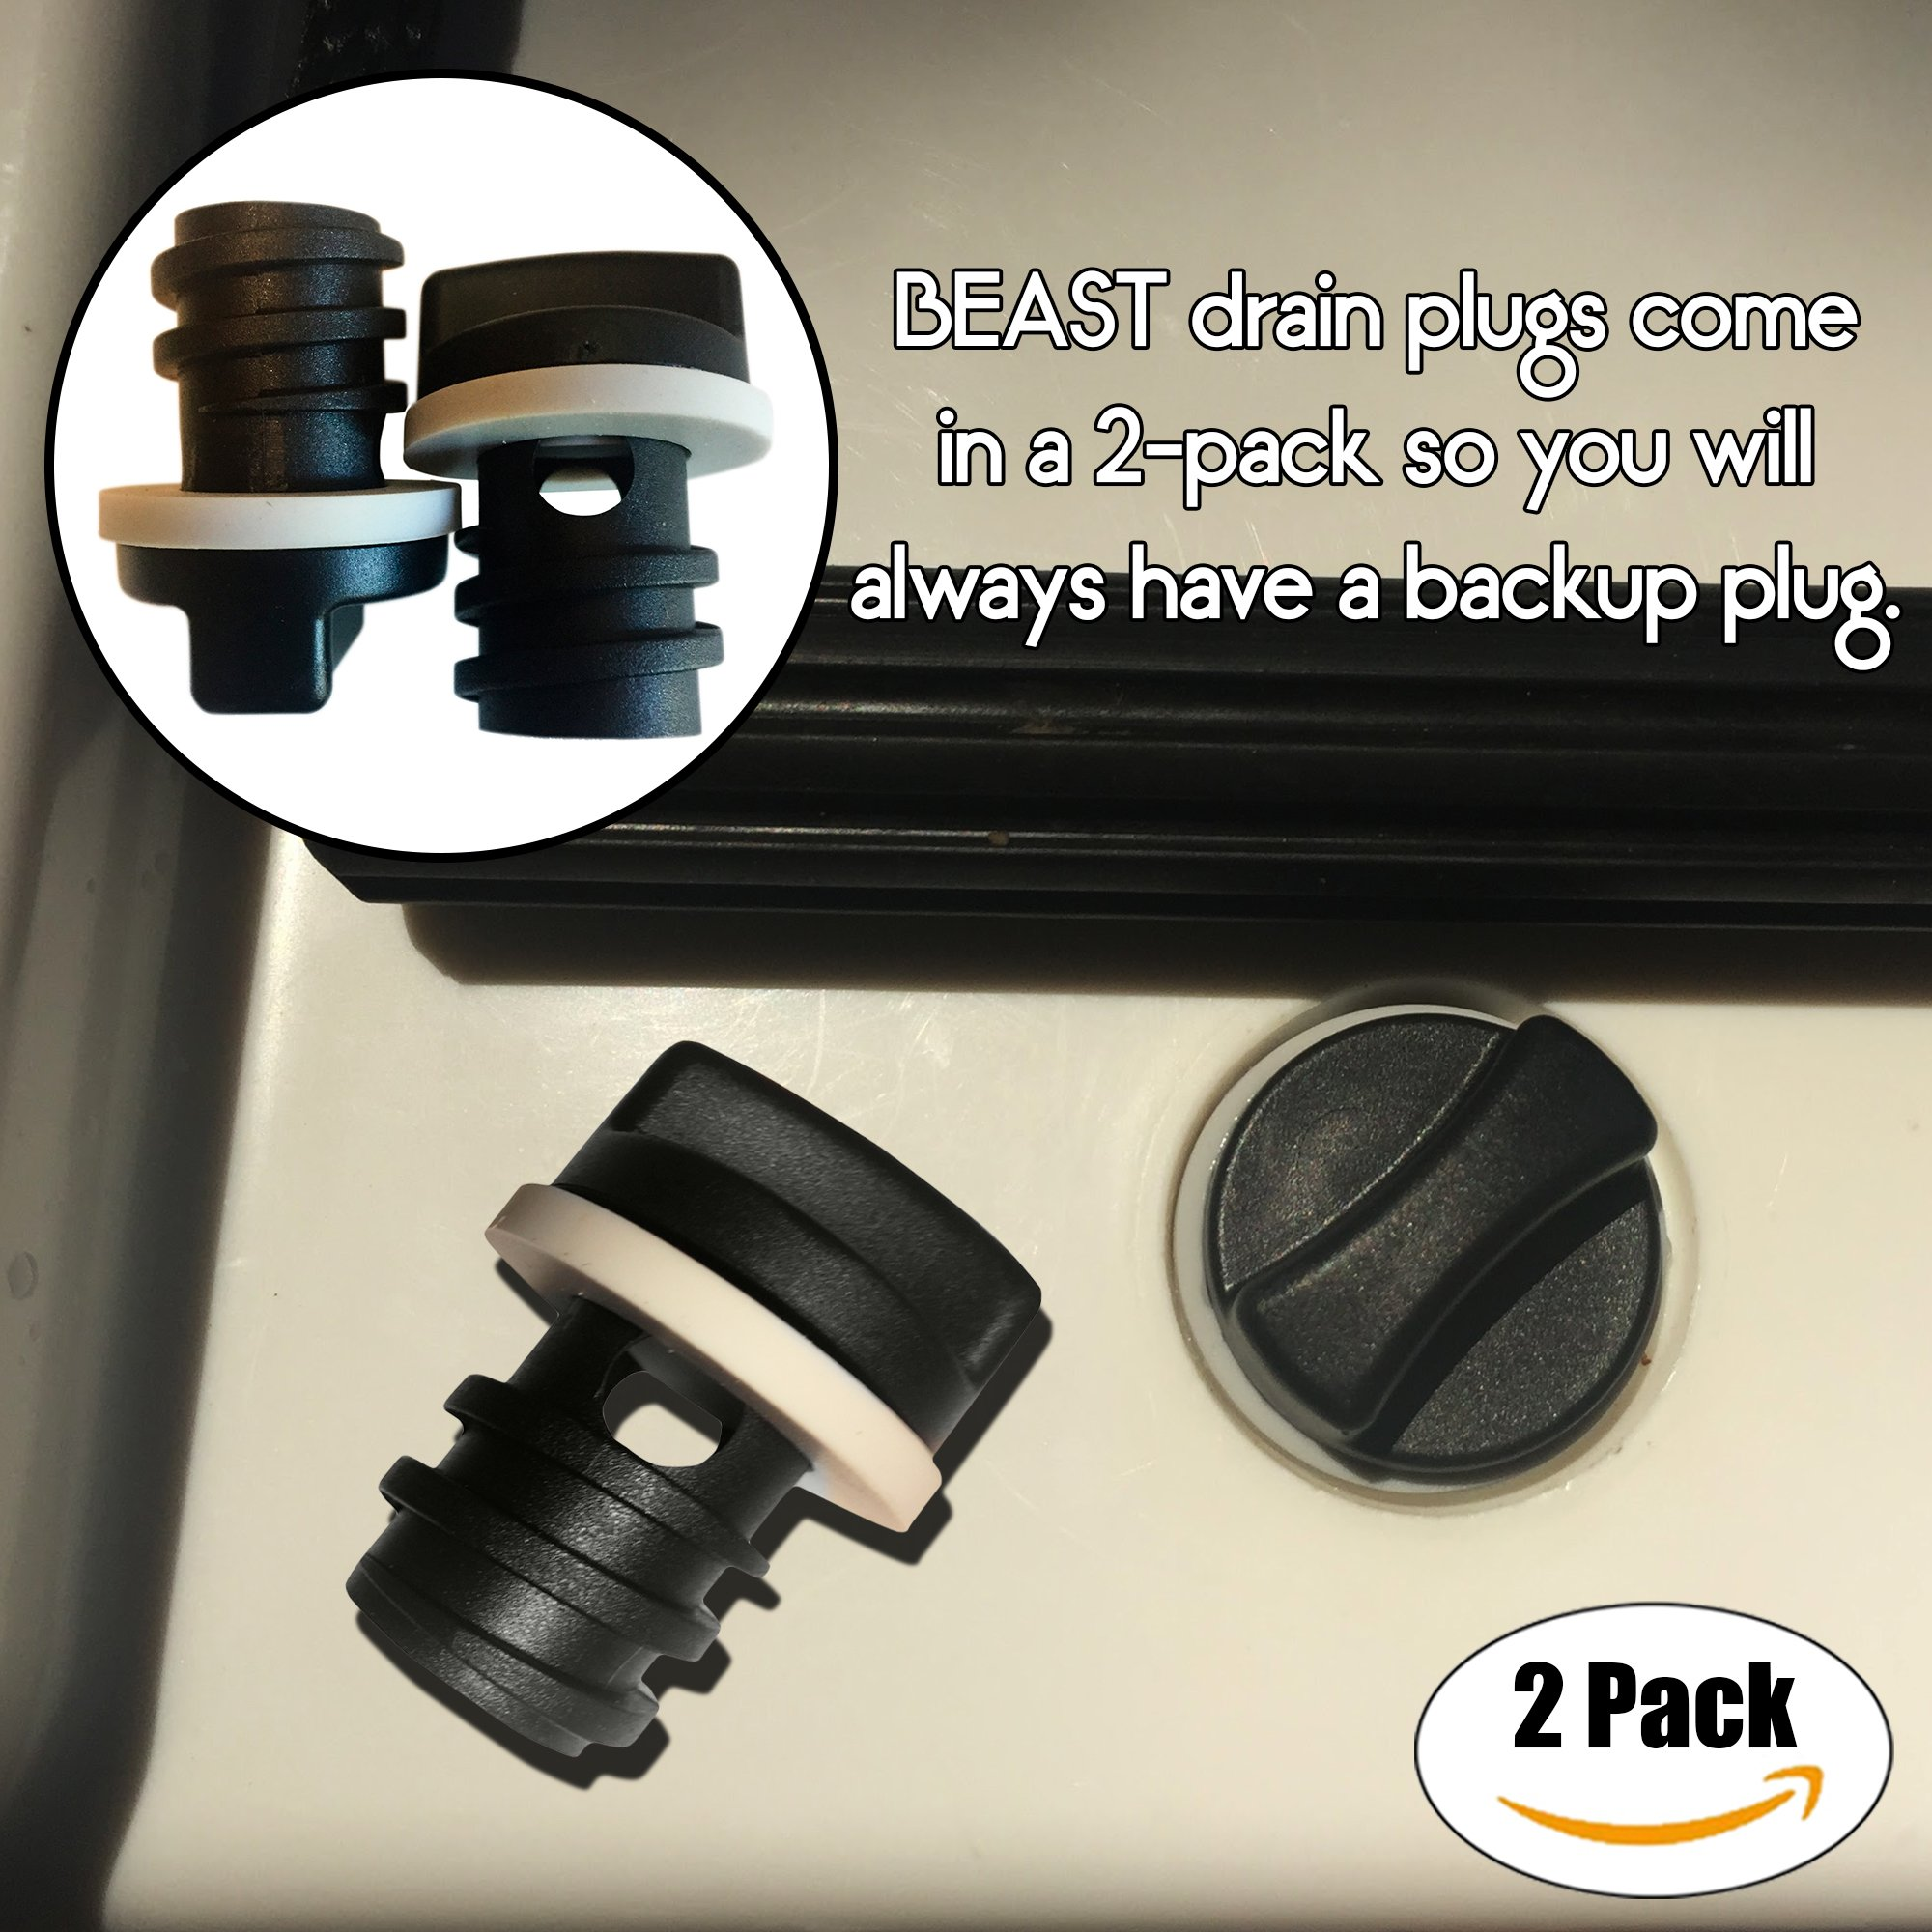 2-Pack of Replacement Drain Plugs for Yeti Coolers - Ergonomically Improved Drain Plug compatible with Yeti's Line of Roadie, Tundra, and TANK Coolers by BEAST Cooler Accessories (Image #3)